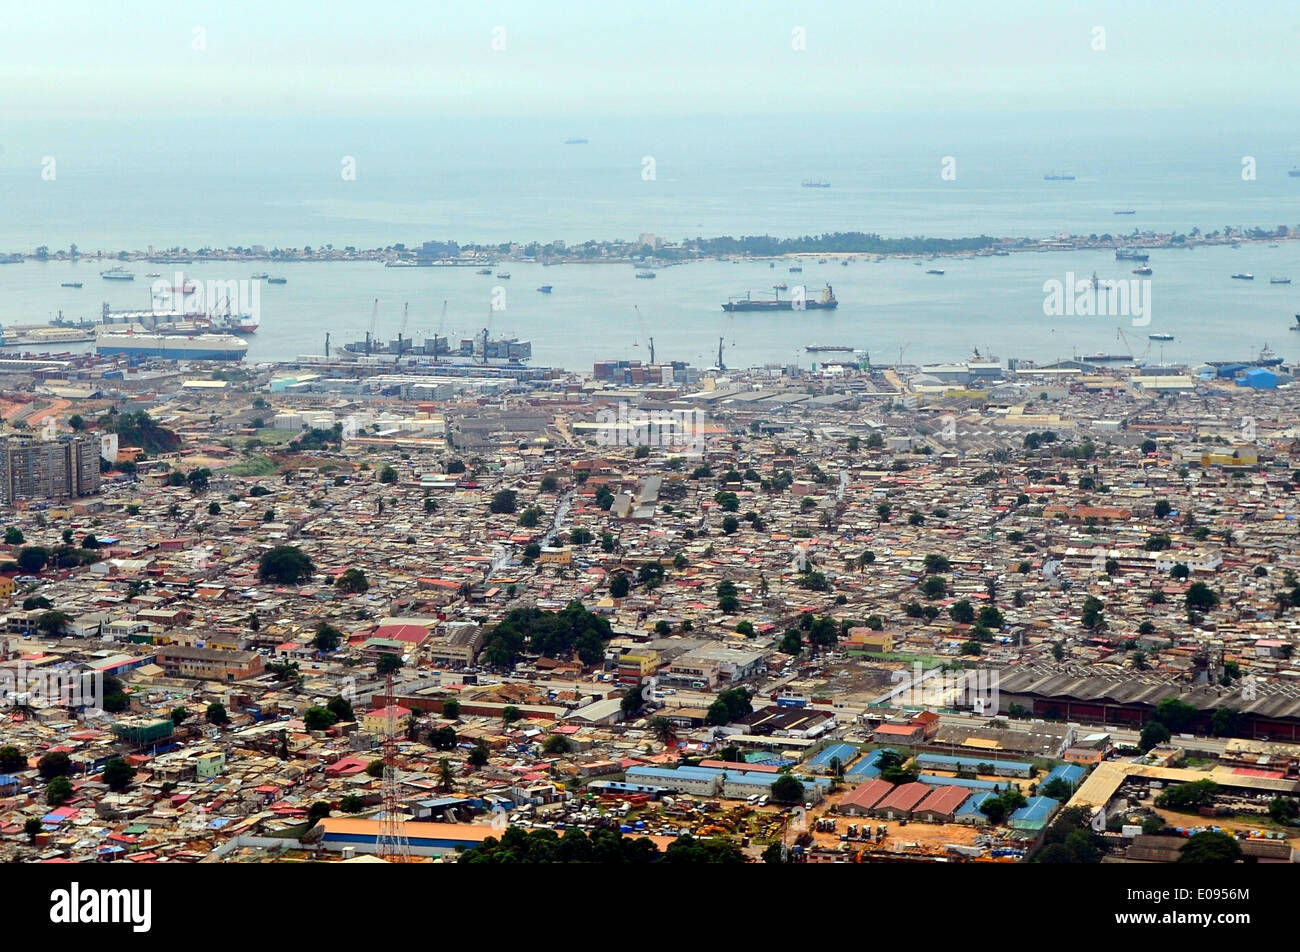 Port of Luanda Seen From Secretary Kerry's Plane Upon Arrival in Angola - Stock Image